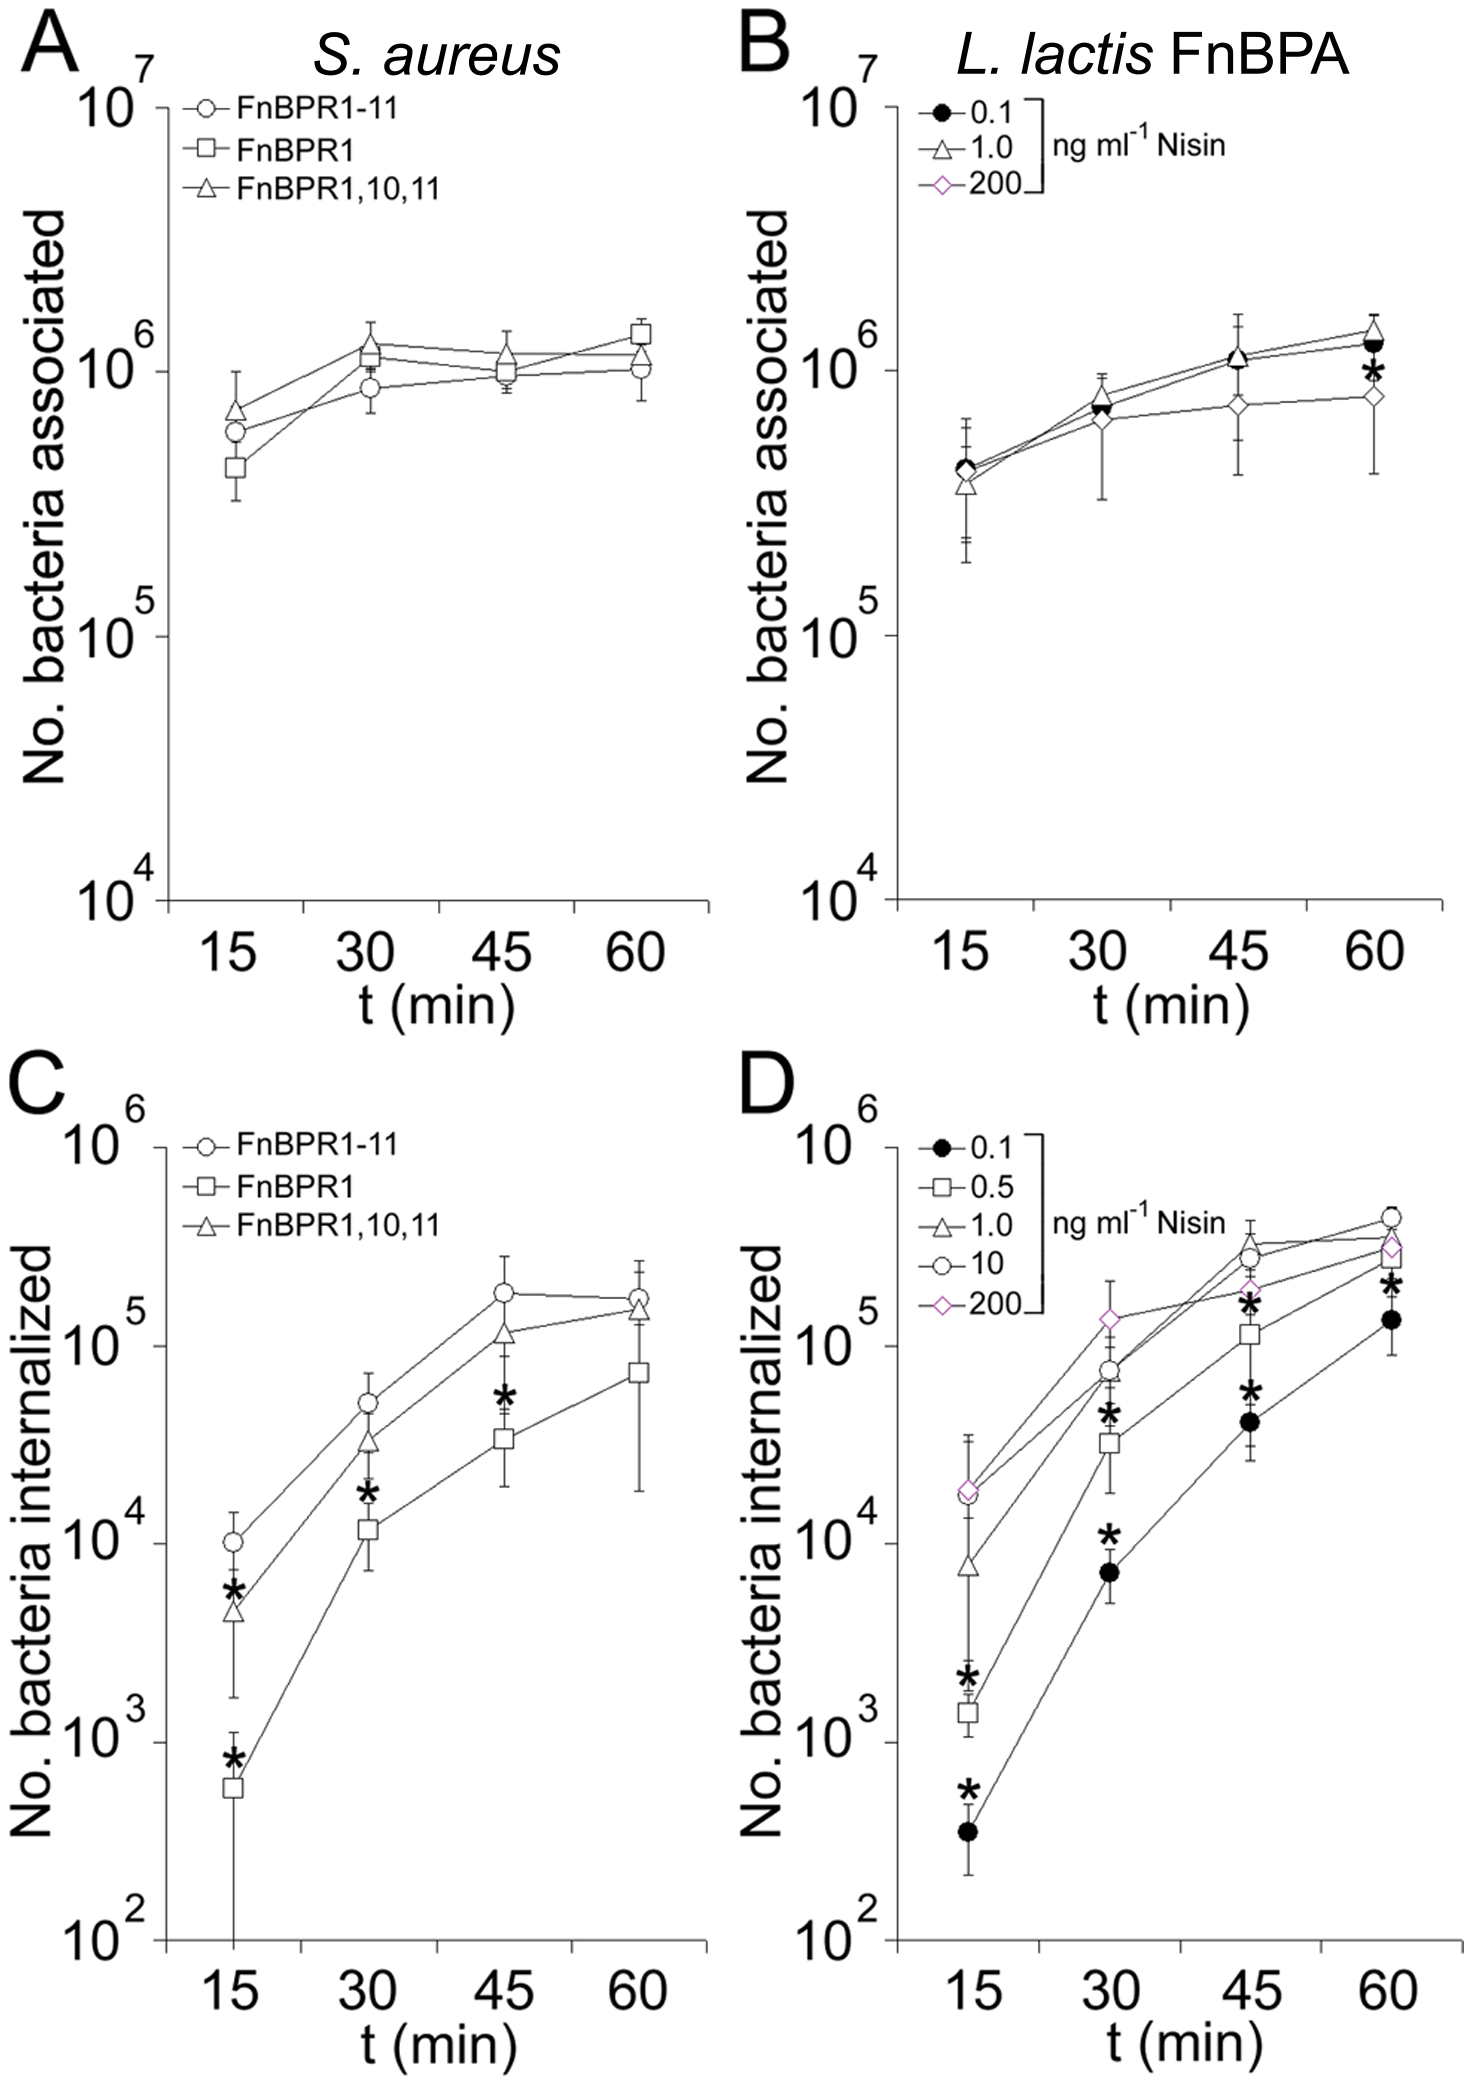 FnBPA composition and expression level modulate the rate of bacterial internalization.